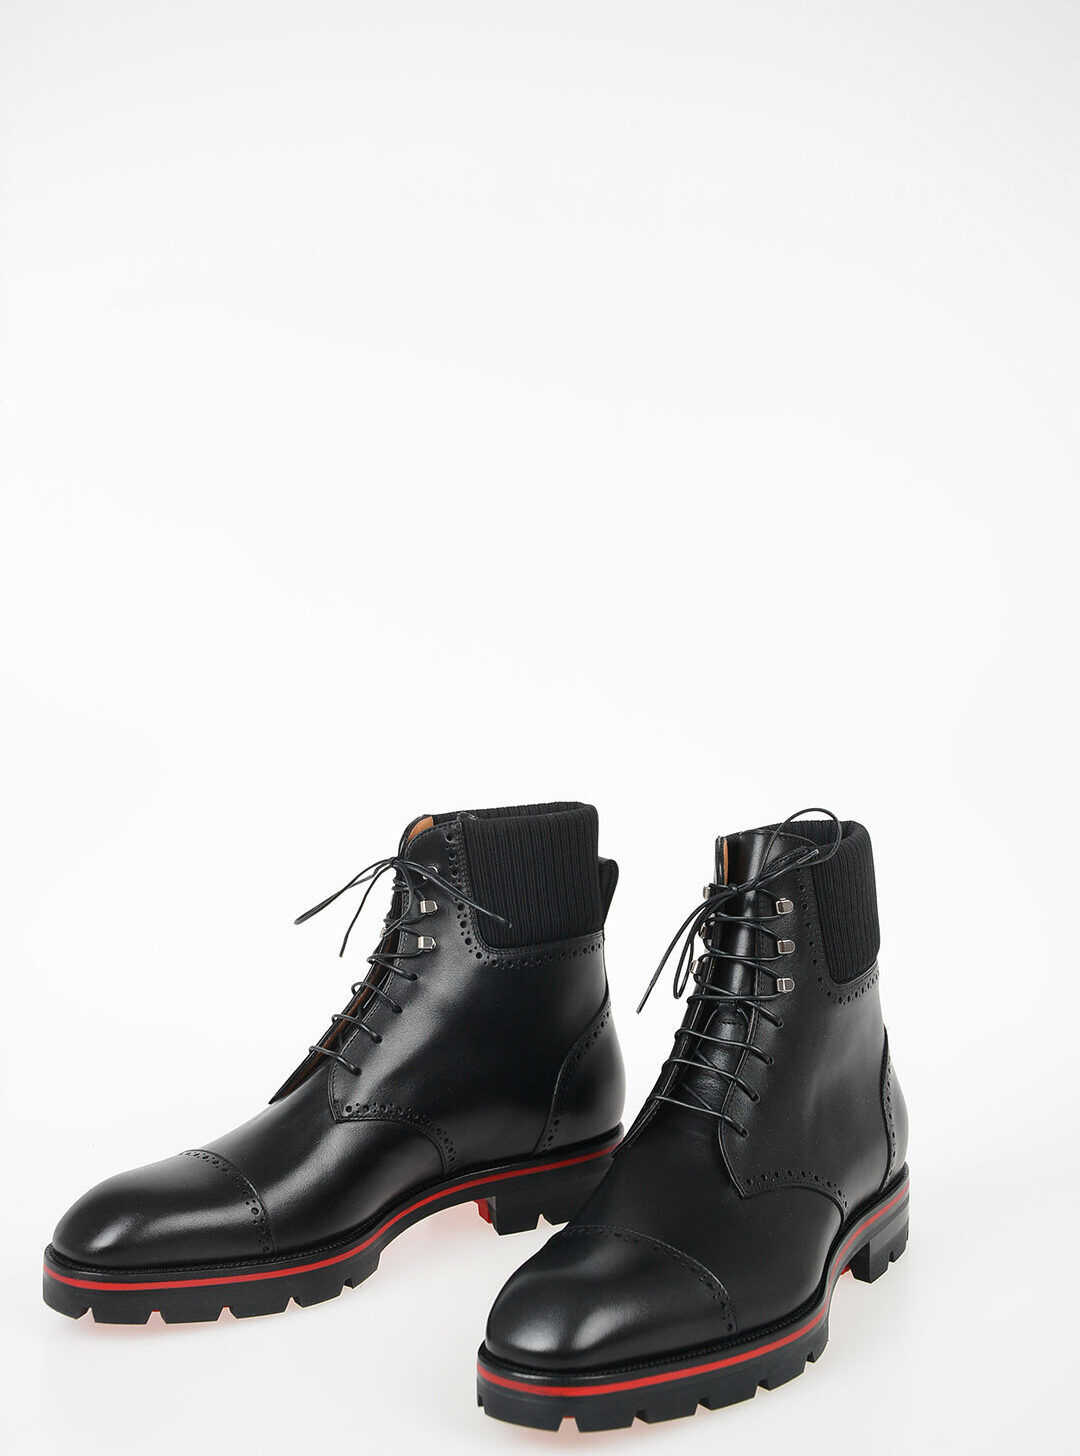 Christian Louboutin Leather Ankle Boots BLACK